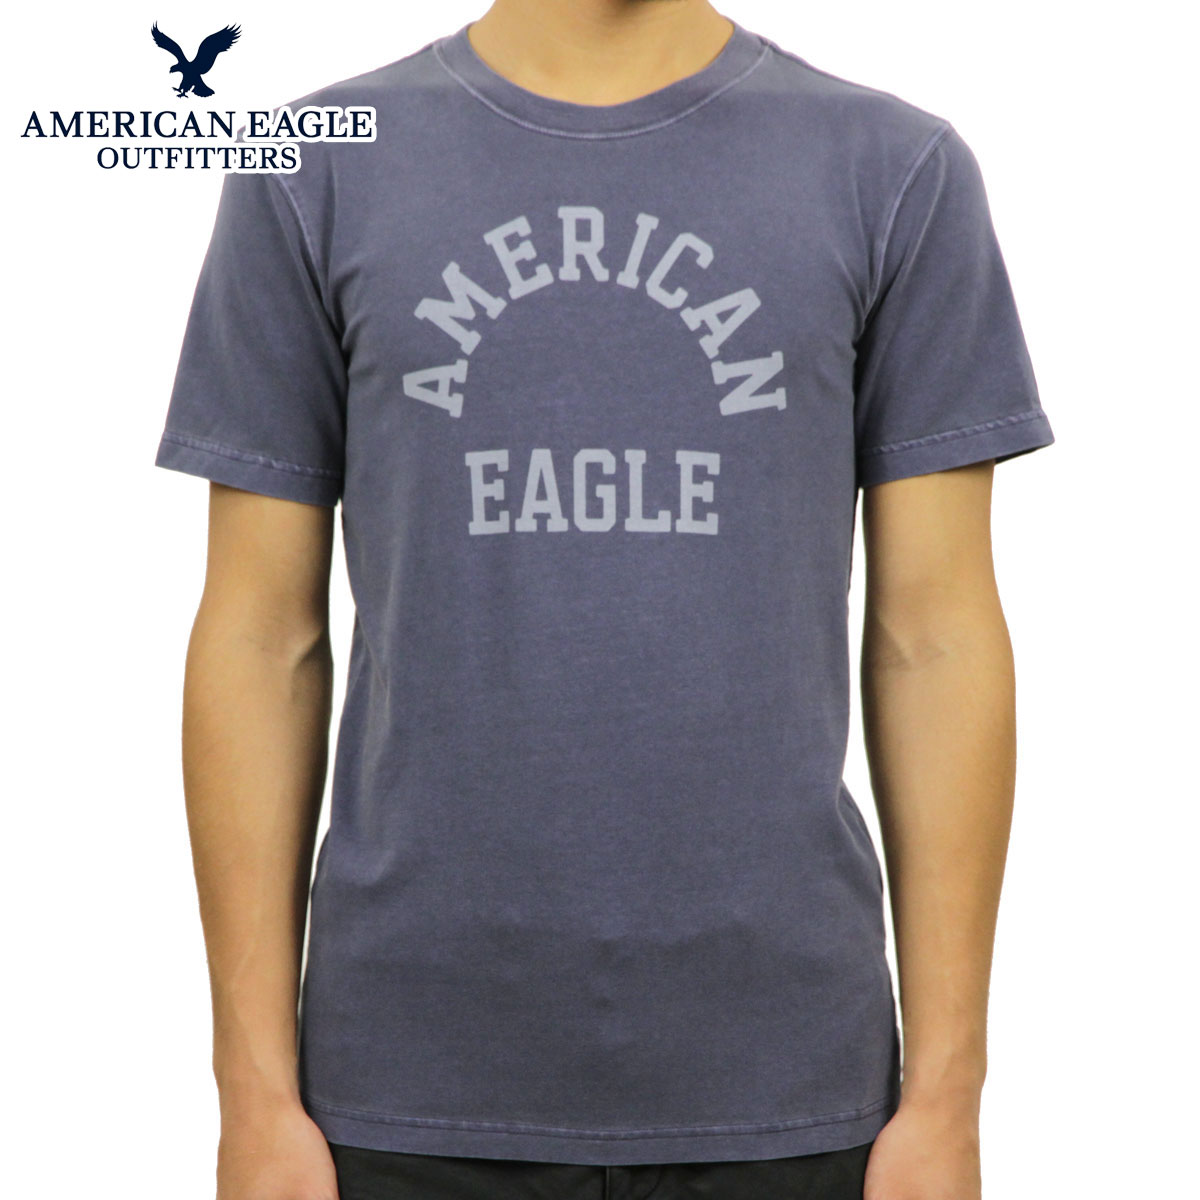 19da82b38 Categories. « All Categories · Men's Clothing · Tops · T-shirts & Tank Tops  · American eagle AMERICAN EAGLE regular article men crew neck short sleeves  ...